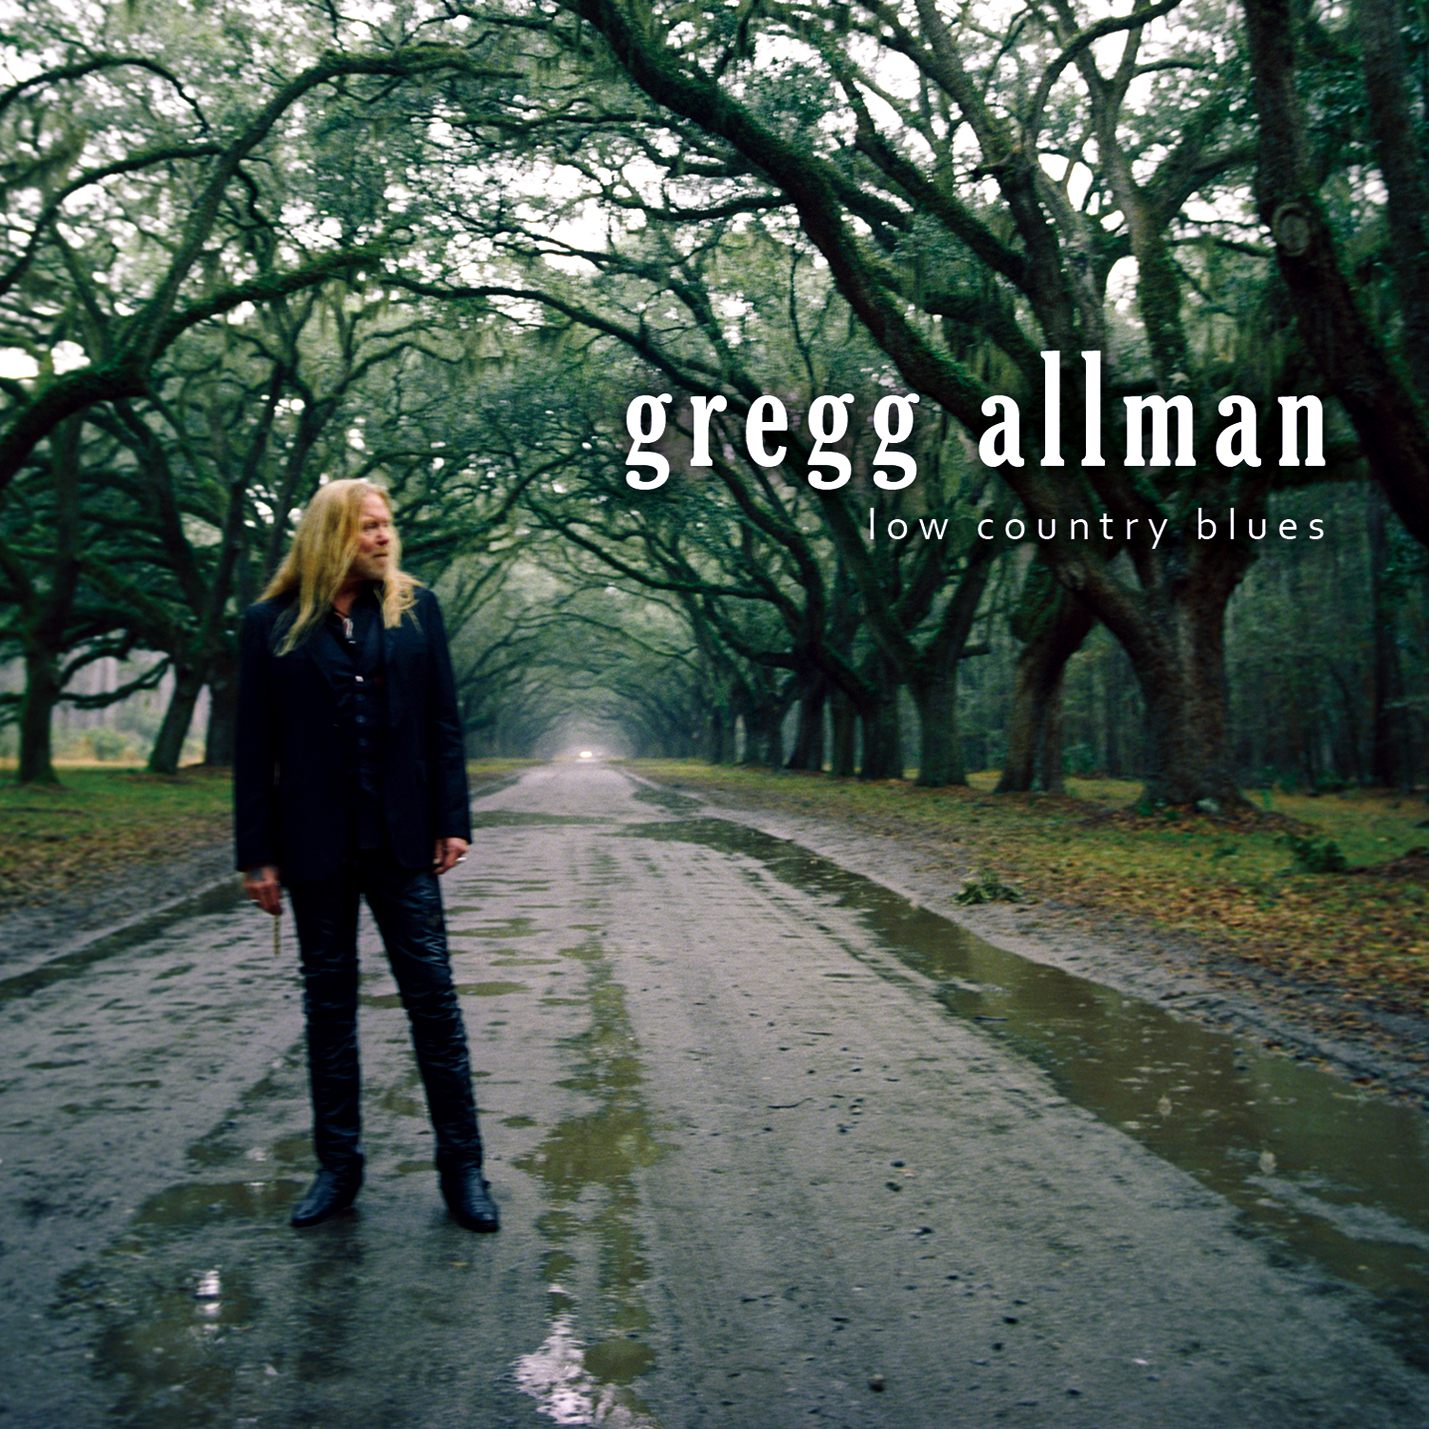 Gregg allman low country blues download